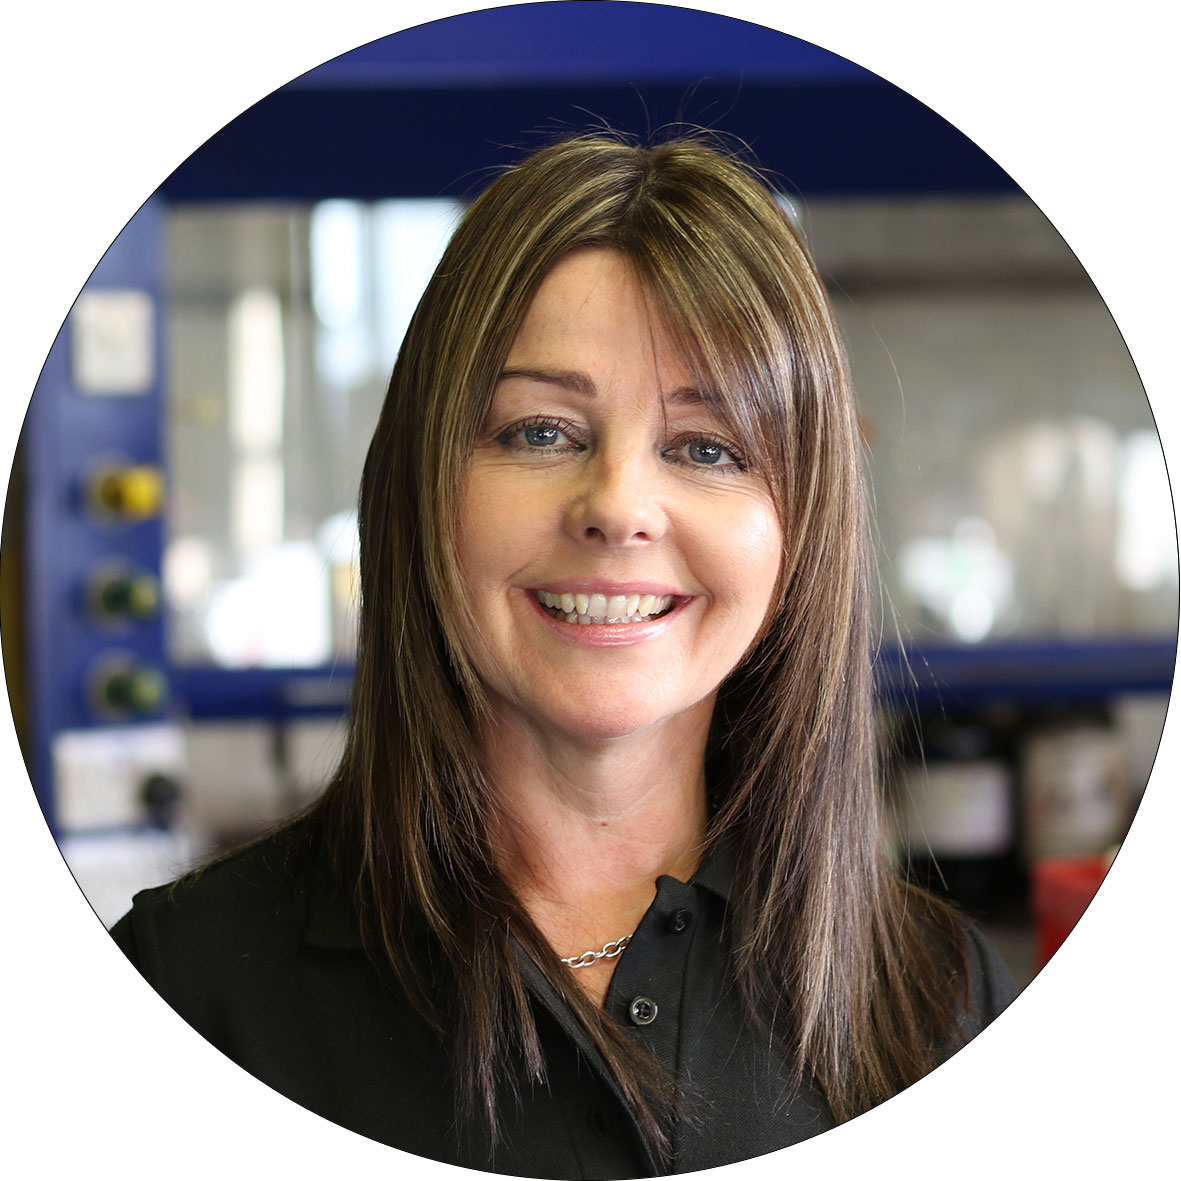 CHRISTINE WILSON - GENERAL MANAGERResponsible for all operations; production, technical, regulatory compliance, health & safety. With more than 25 years' experience, her speciality is dye and pigment dispersions.cwilson@ttc-colours.com